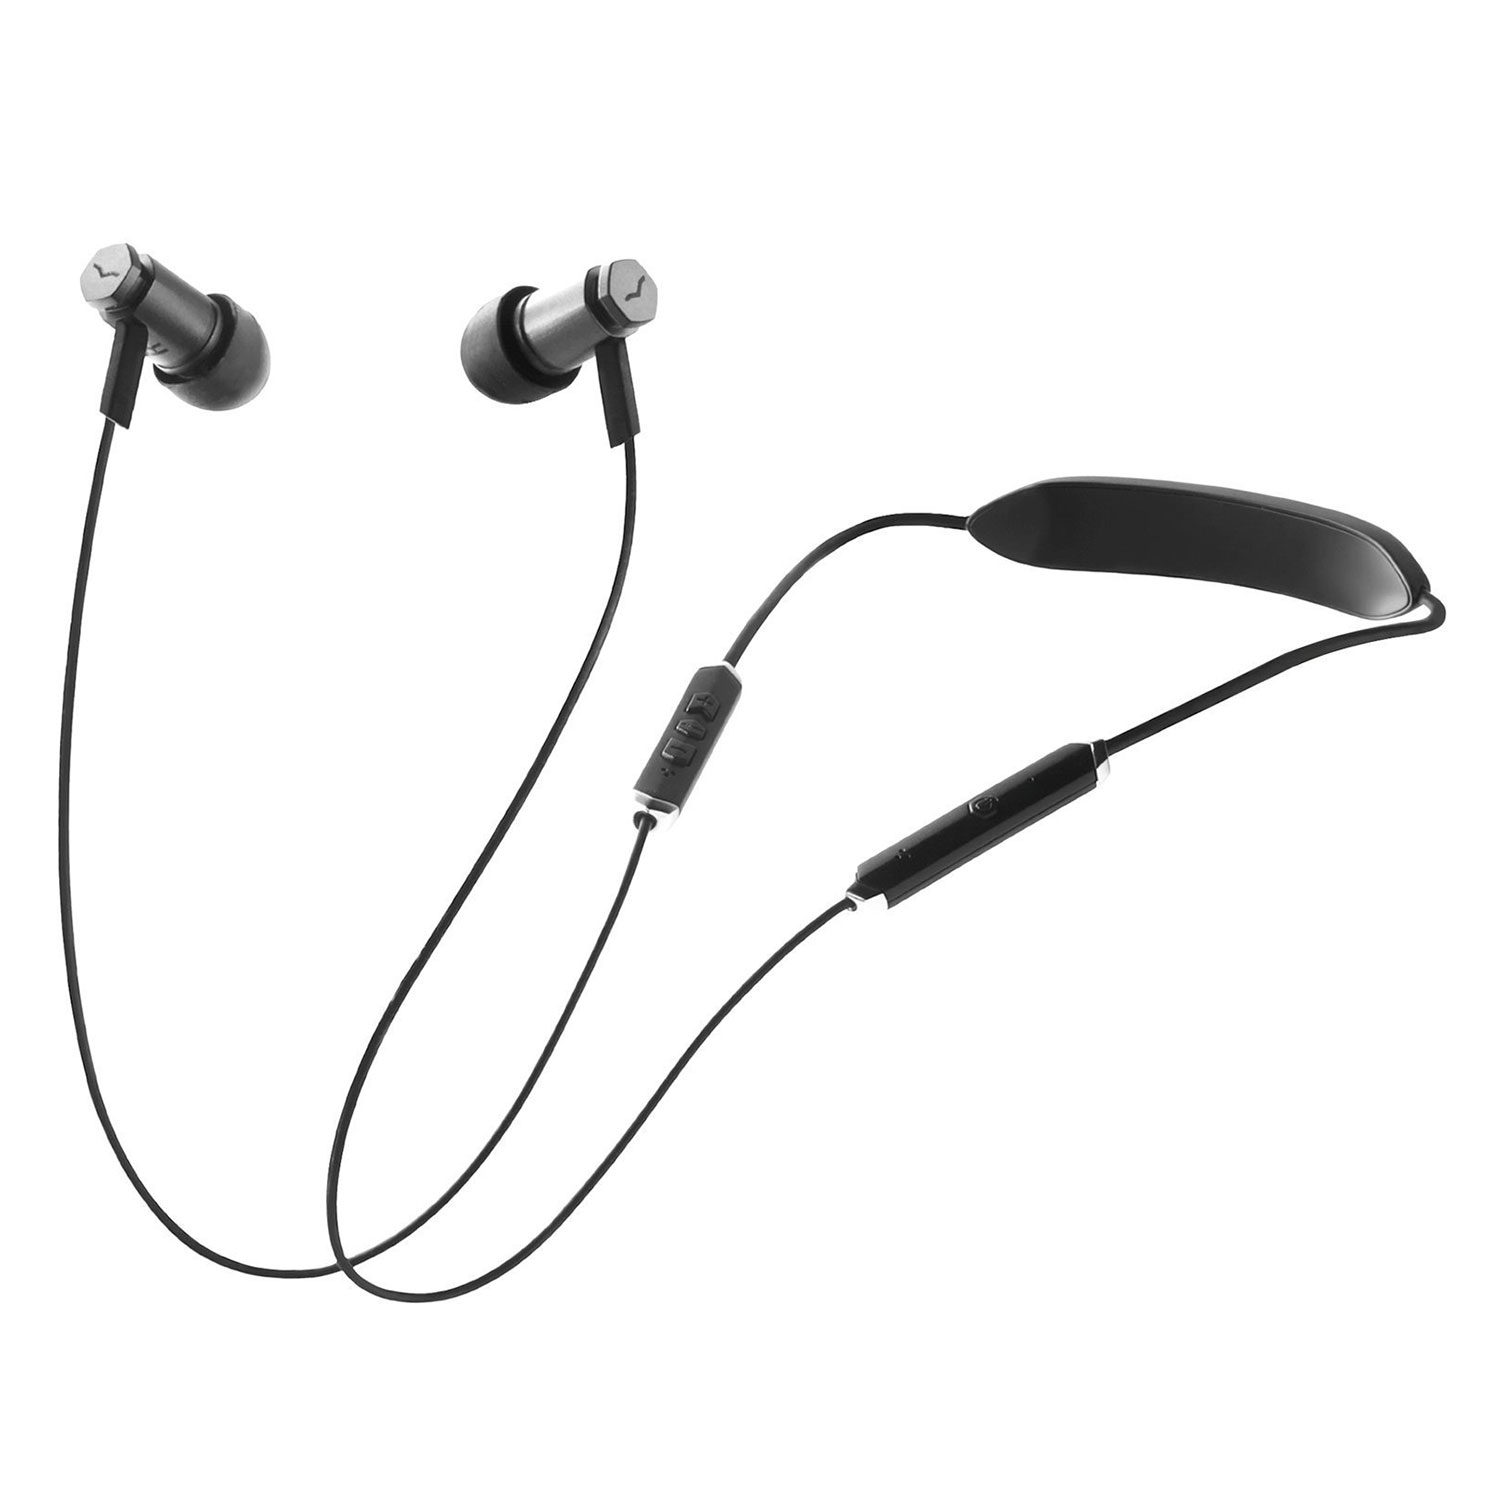 V-Moda Forza Metallo Wireless In-Ear koptelefoon Gunblack